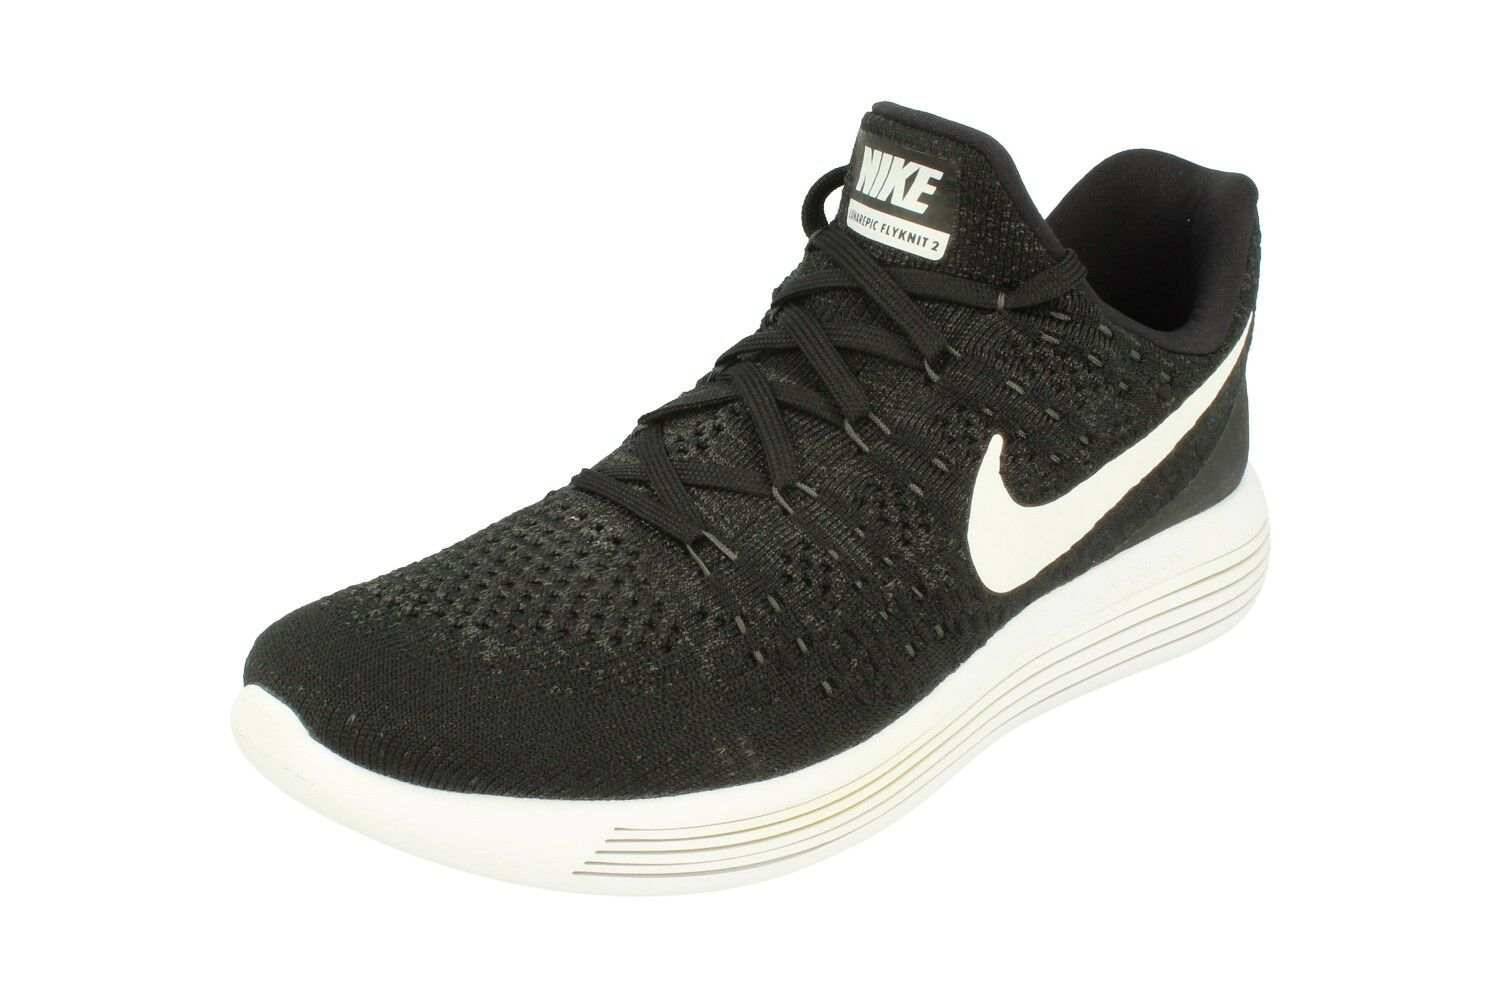 Nike Lunarepic Niedrig Flyknit Trainers 2  Uomo Running Trainers Flyknit 863779 Sneakers Schuhes 001 154d40